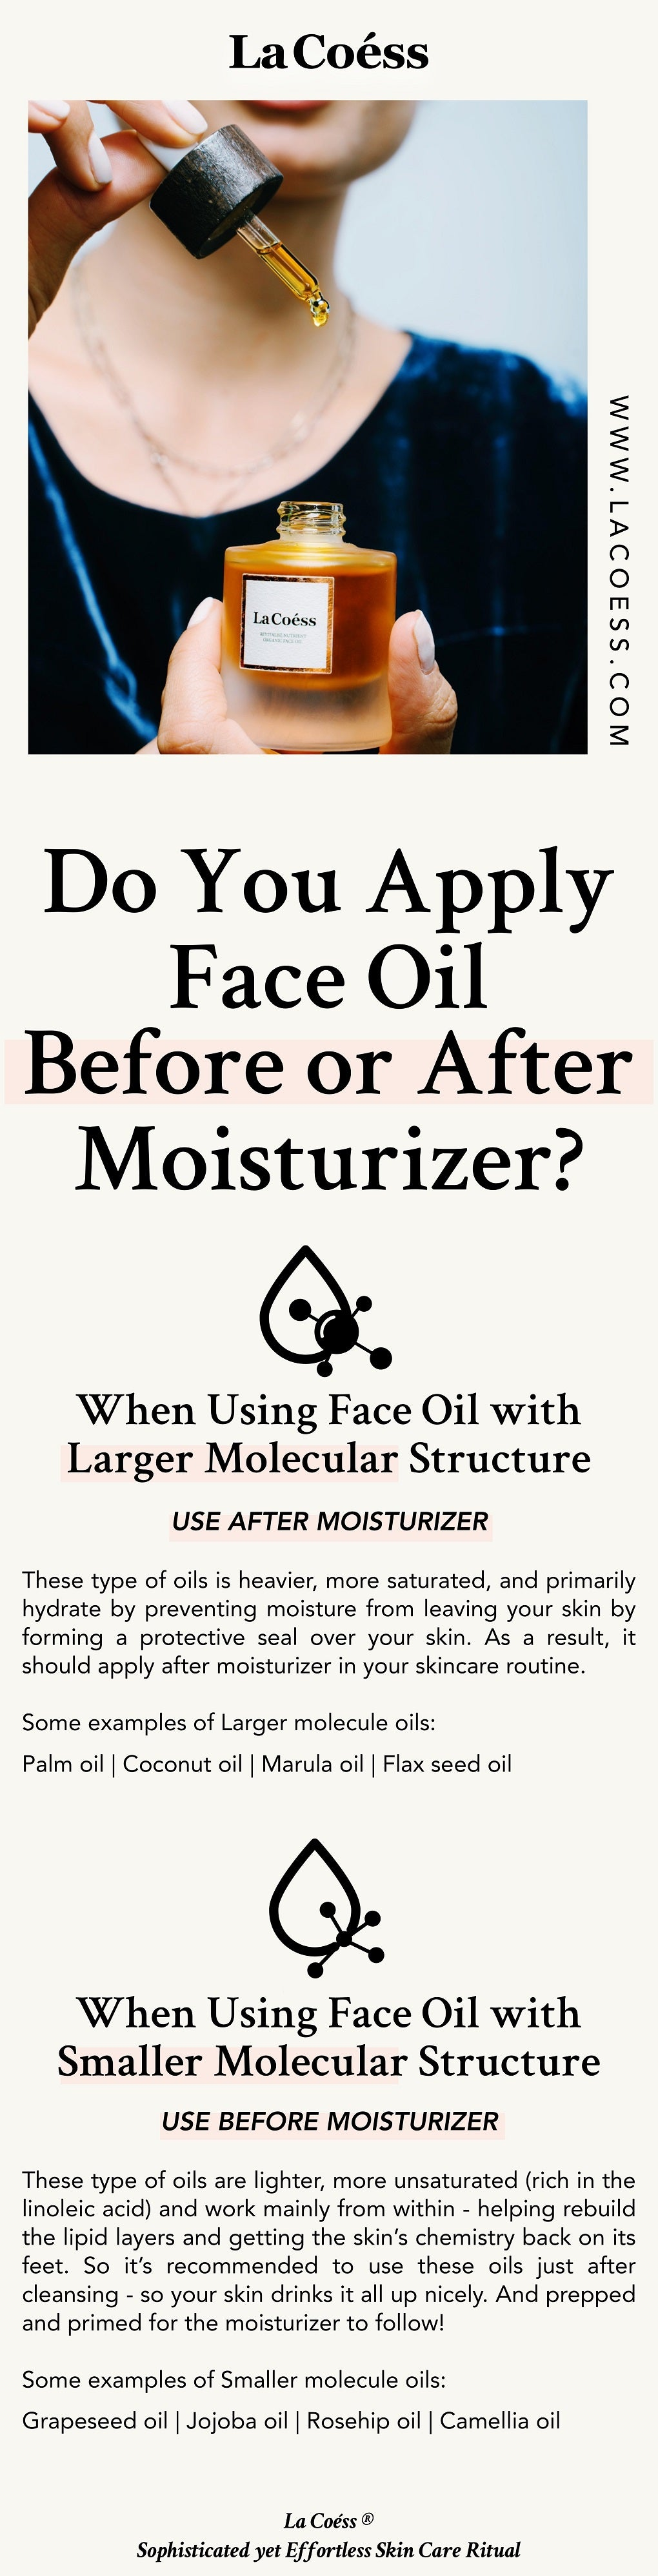 Do You Apply Face Oil Before or After Moisturizer?